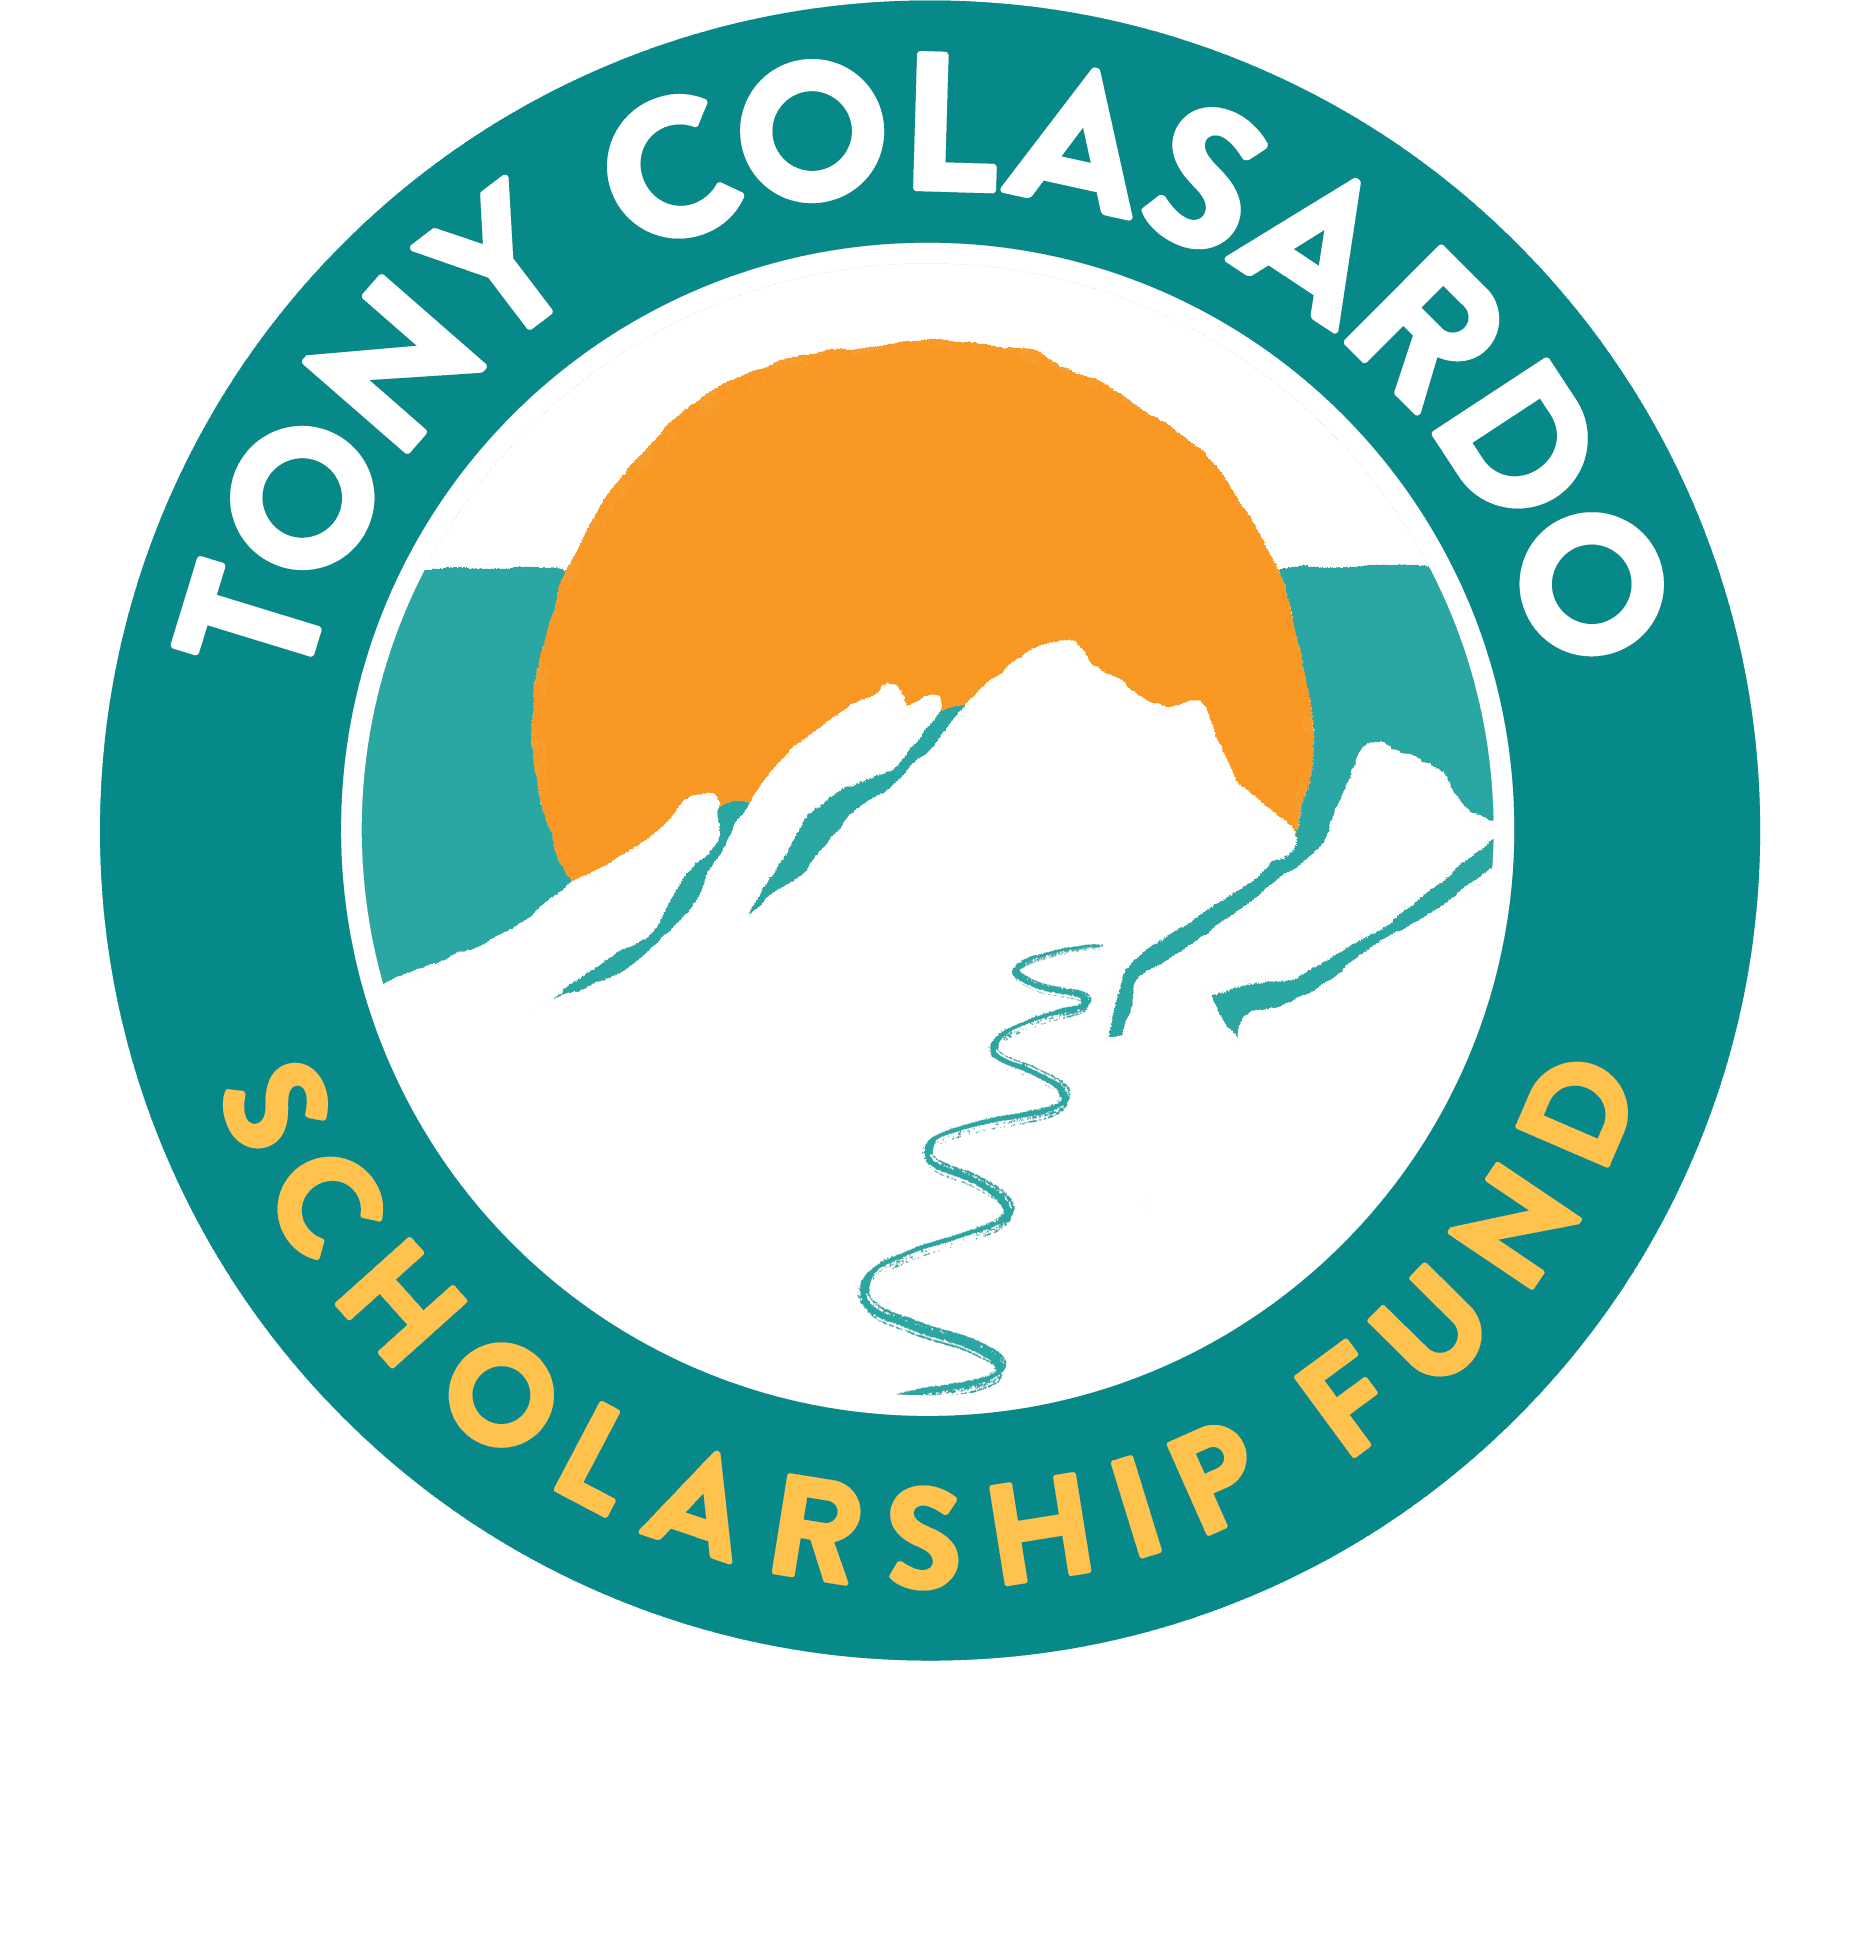 Tony Colasardo Scholarship Fund Logo